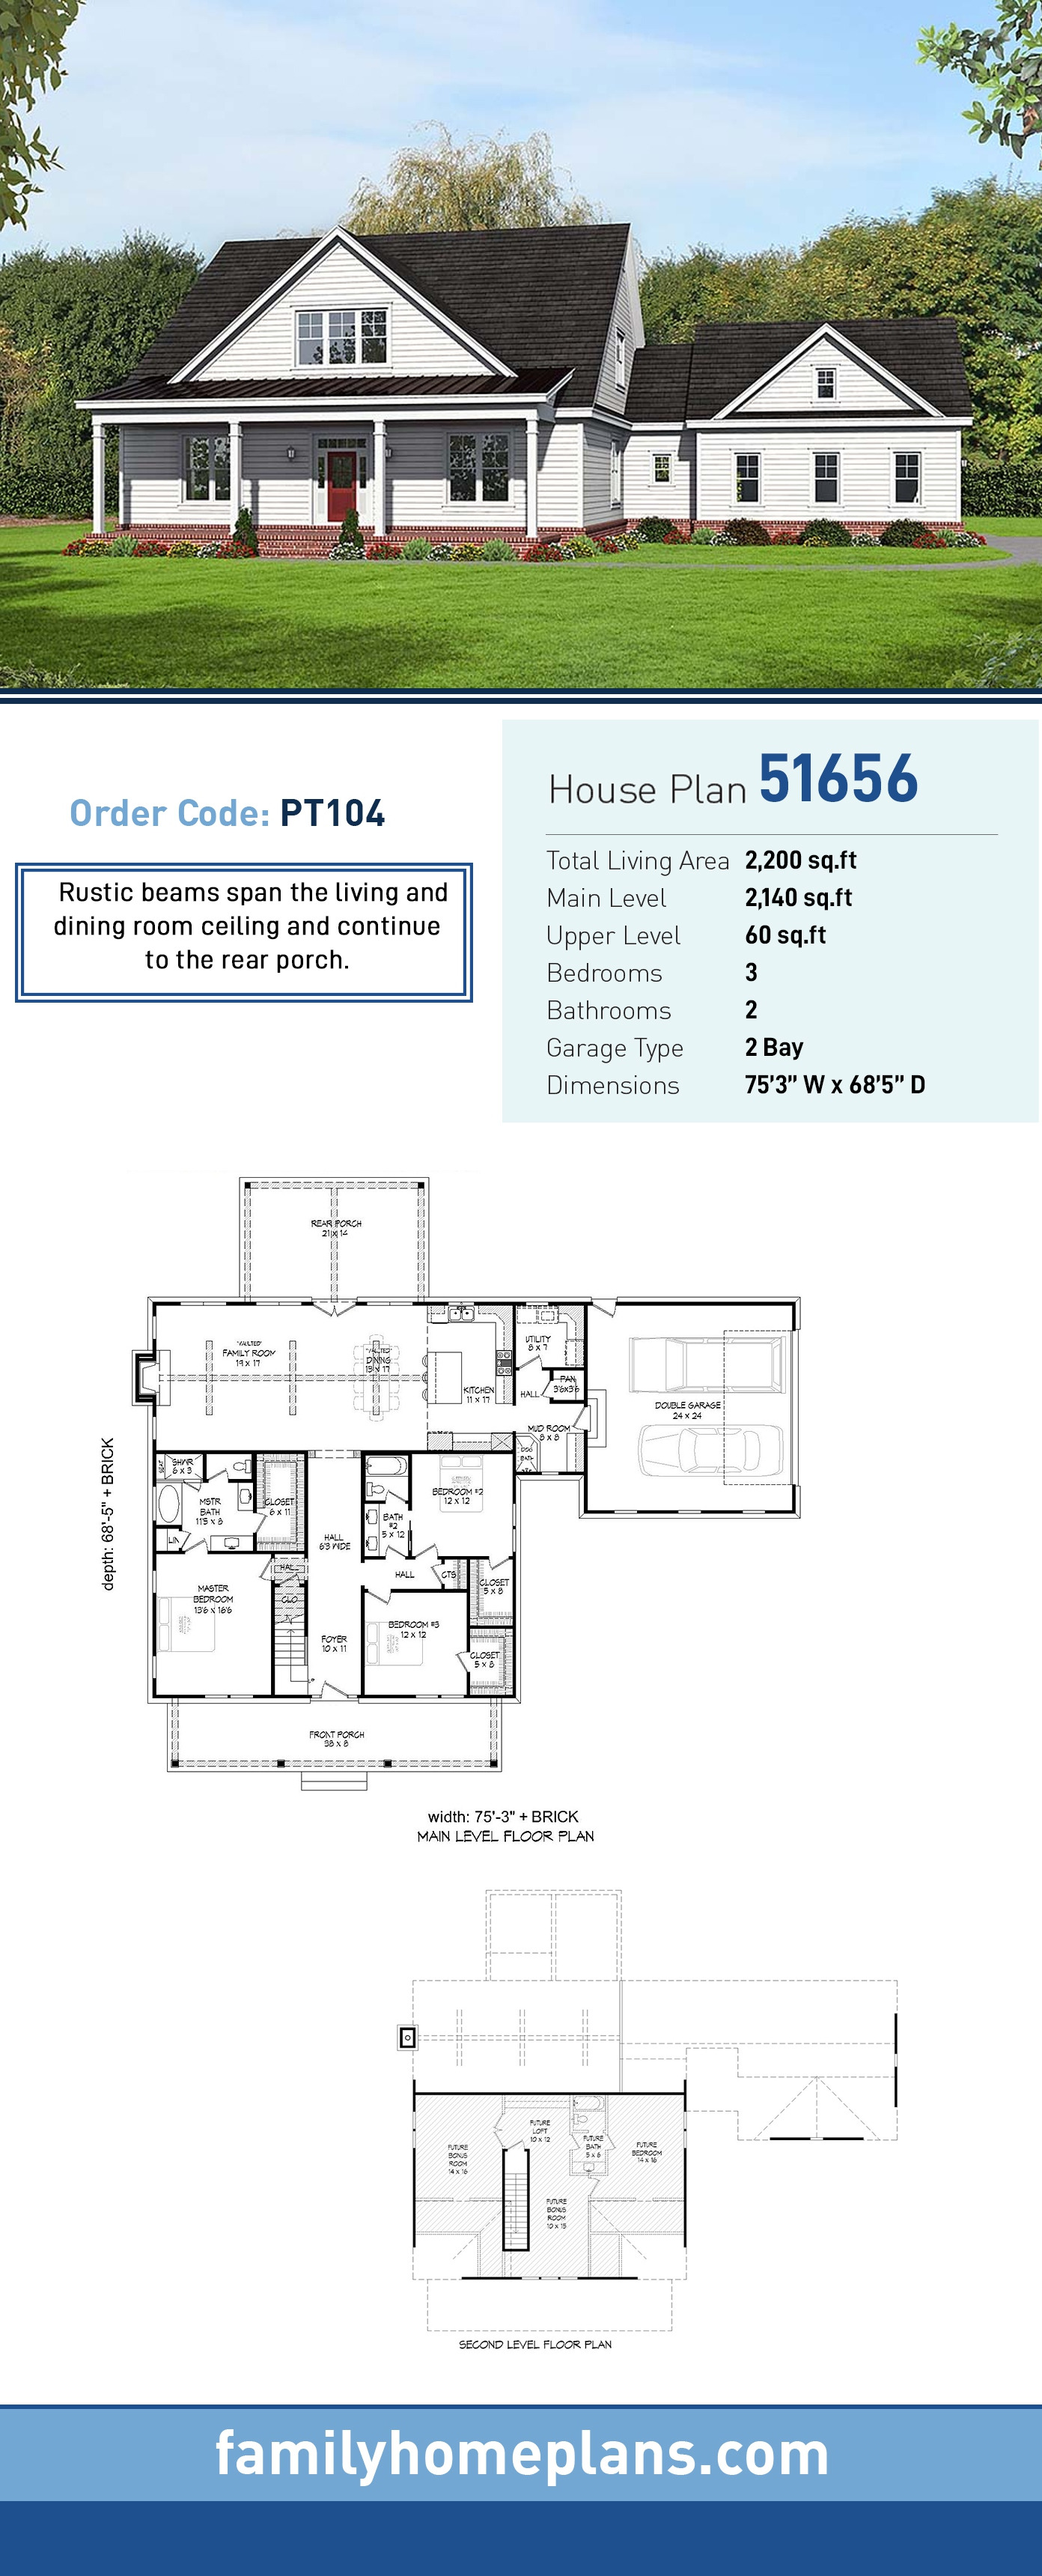 house plan OrderCode=PT104